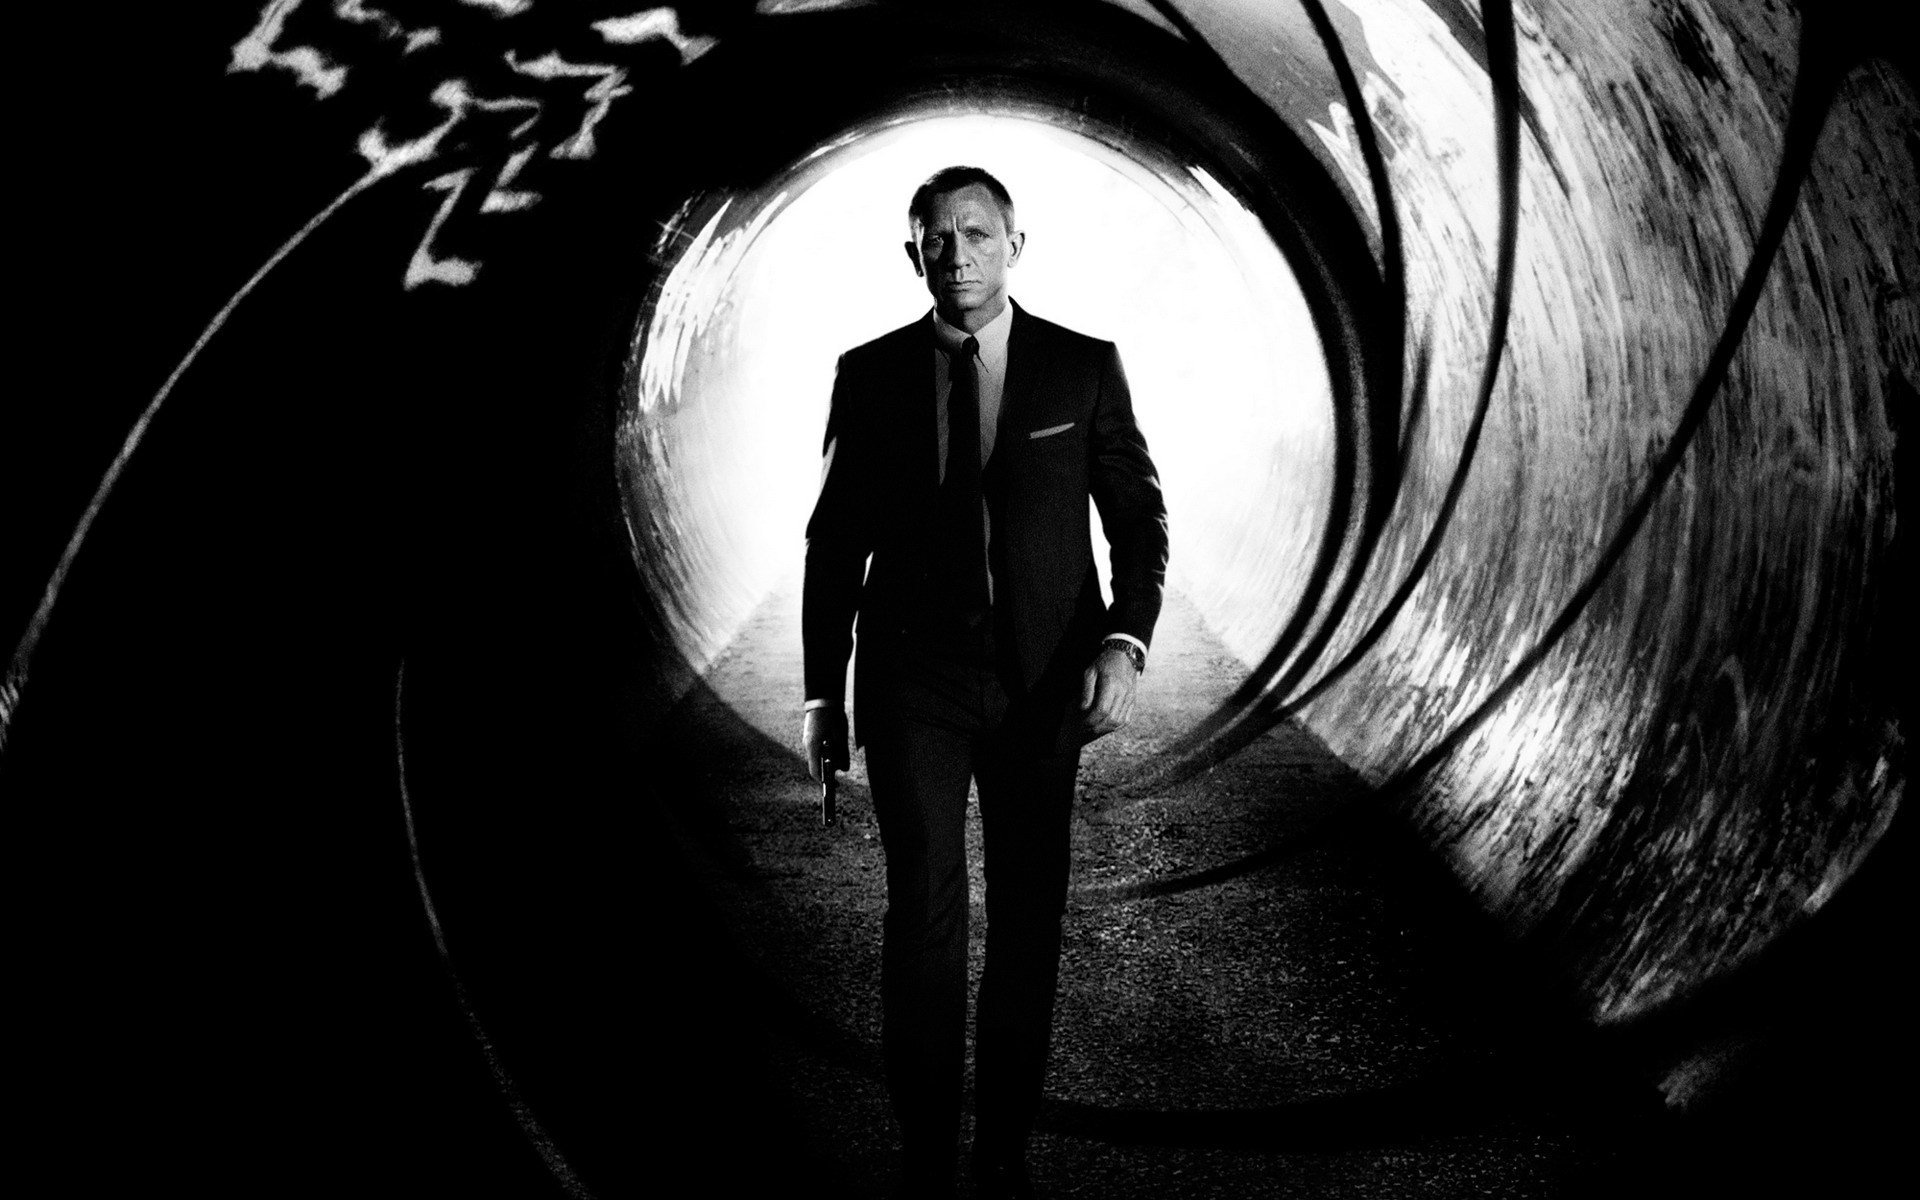 1920x1200px james bond desktop wallpaper - wallpapersafari